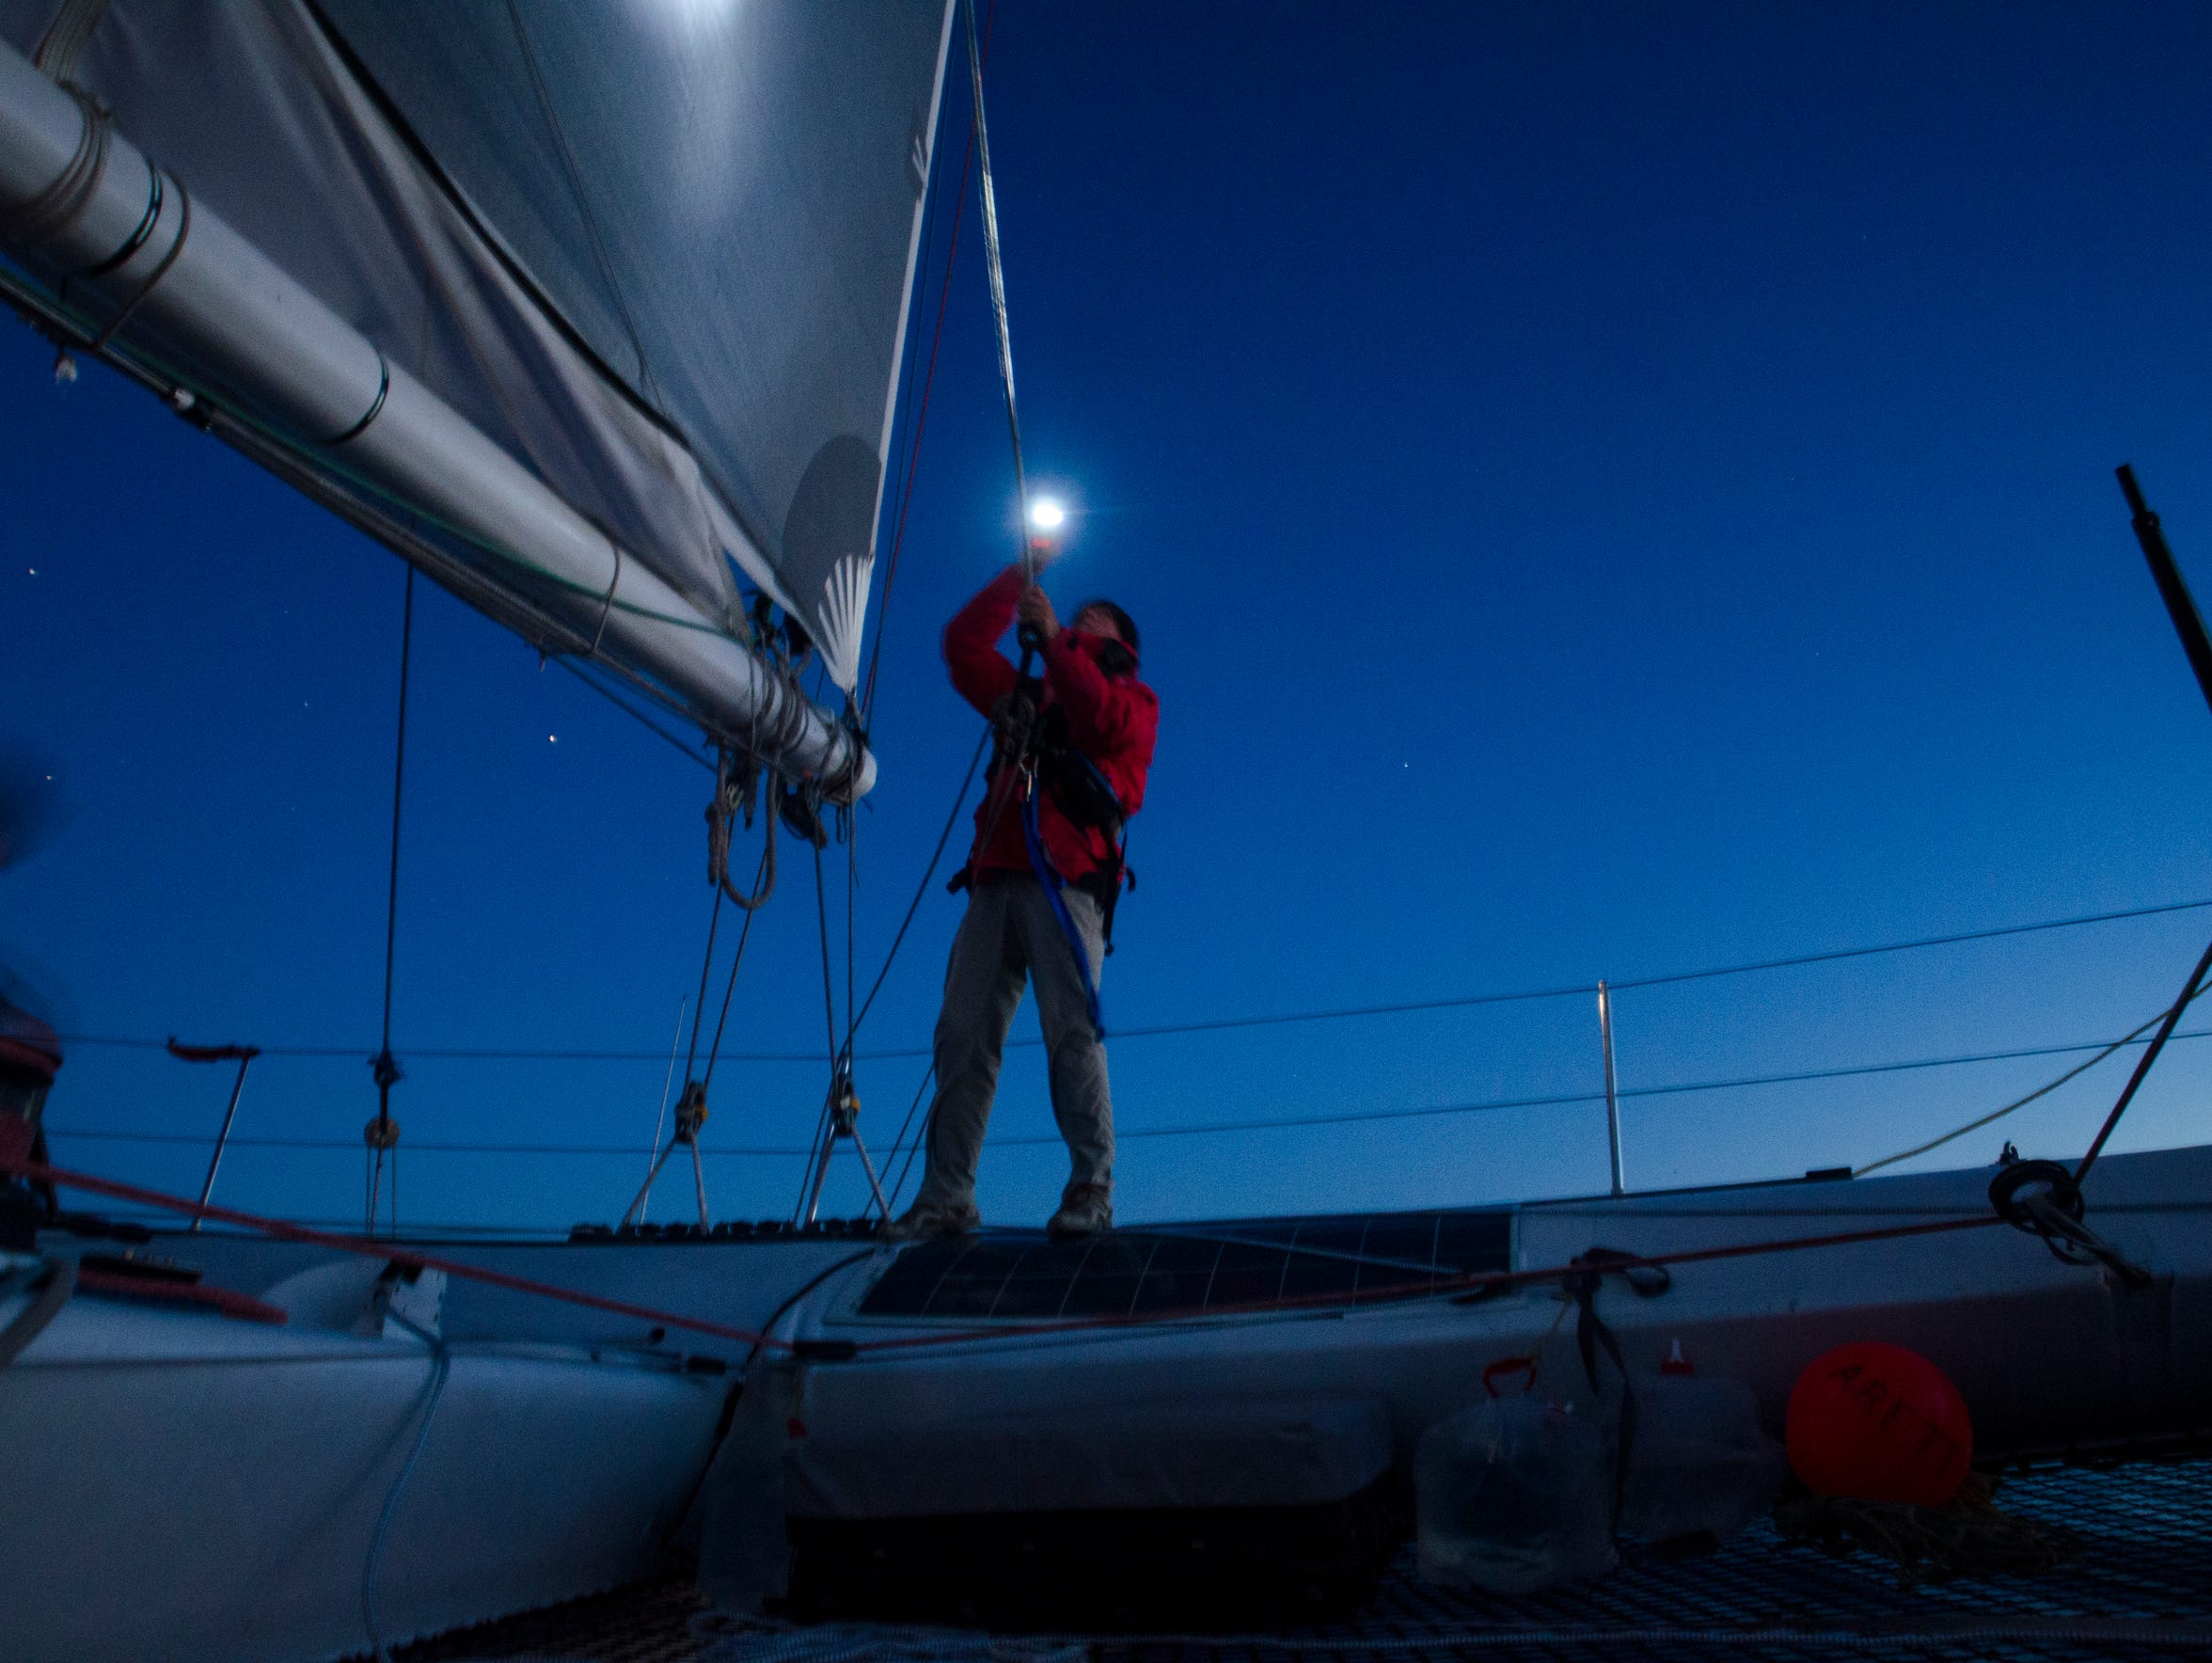 Arete Skipper Rick Warner checks a sail at night Saturday,